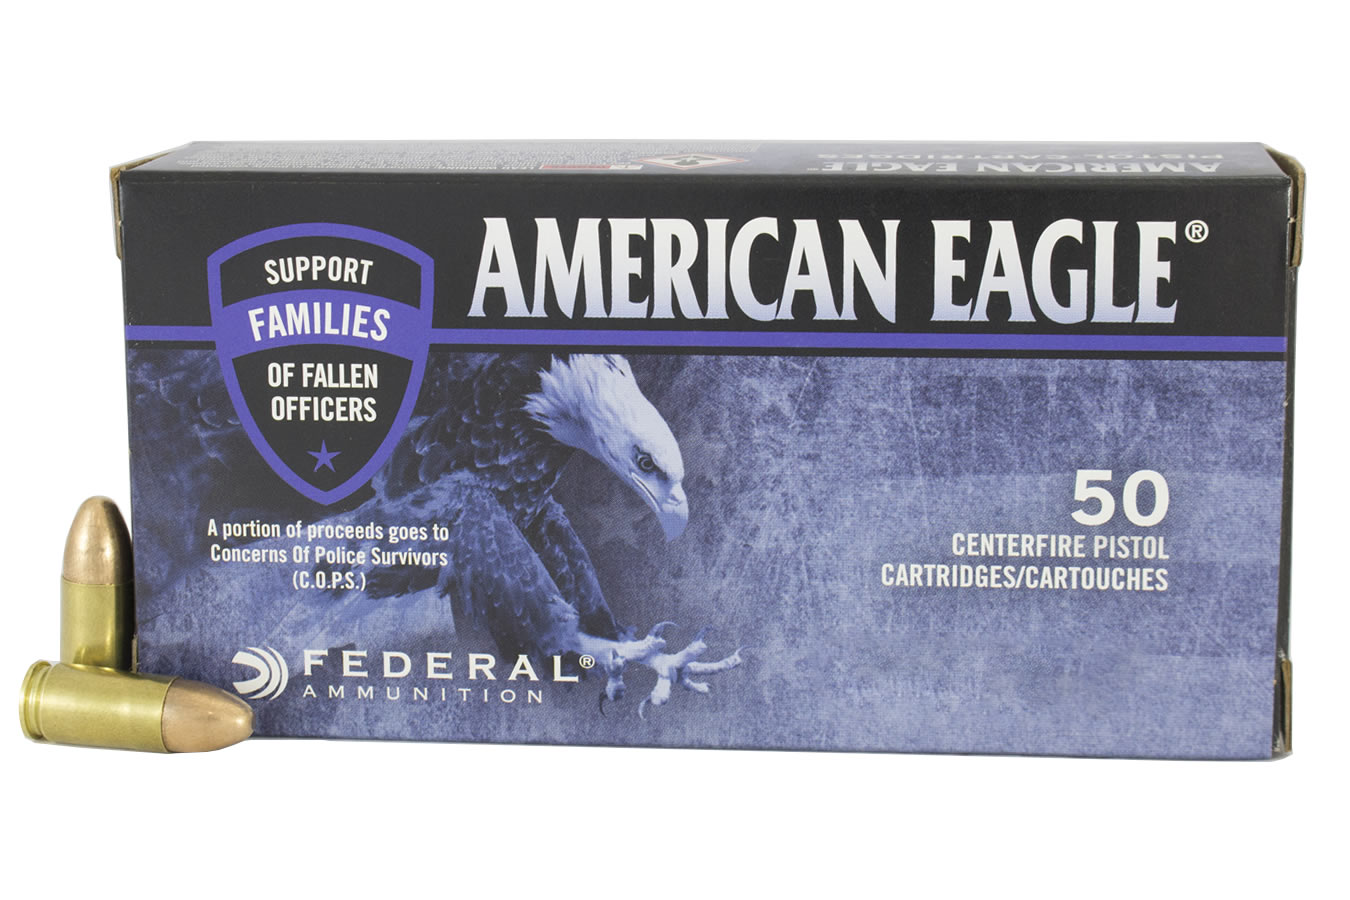 FEDERAL AMMUNITION 9MM 115GR FMJ AMERICAN EAGLE C.O.P.S.